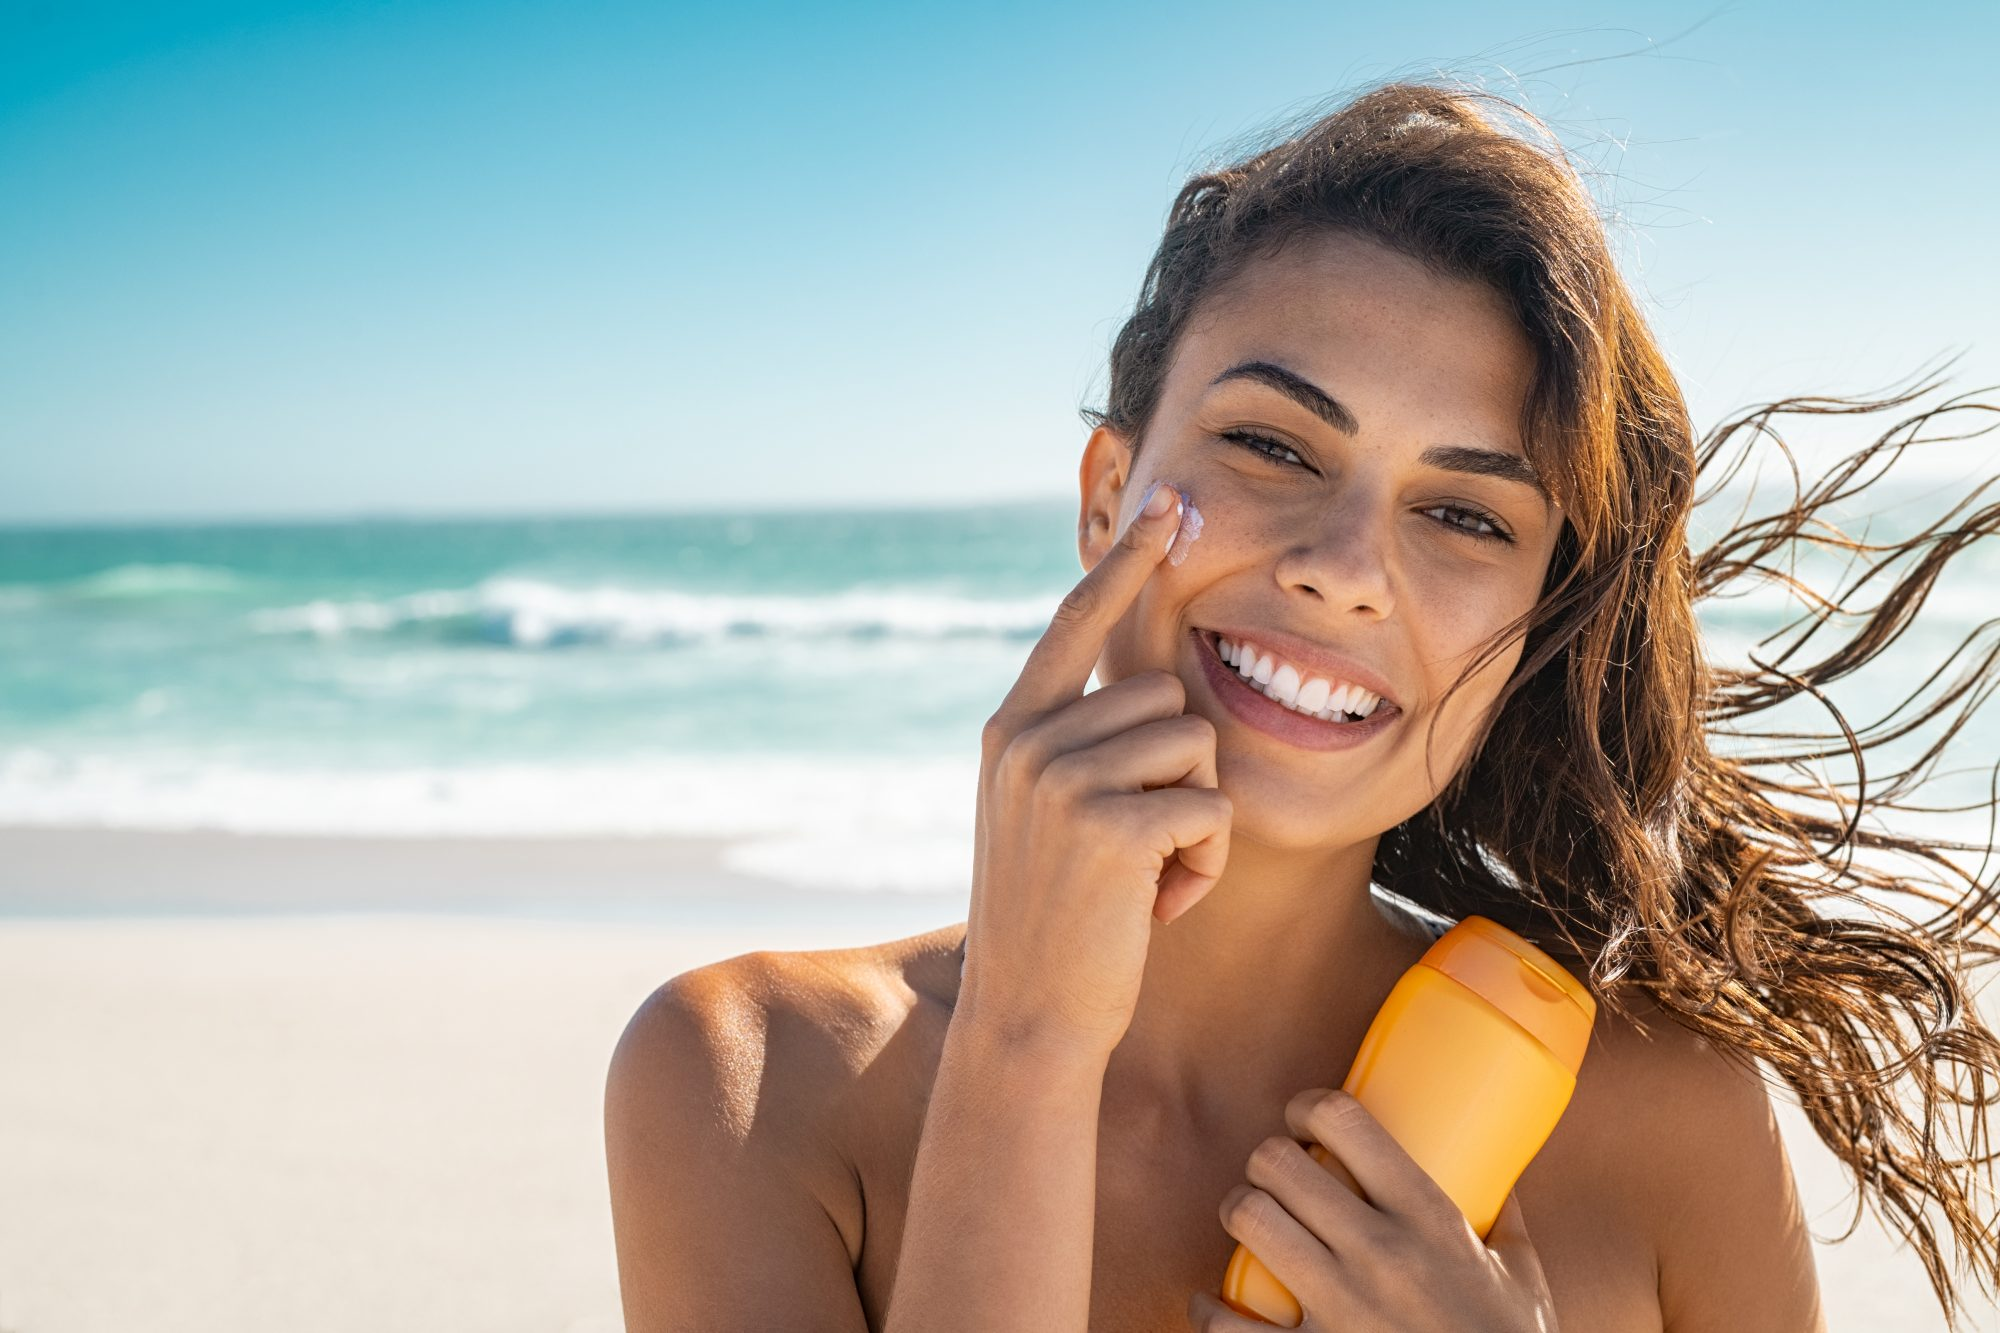 woman applying sunscreen to face at beach